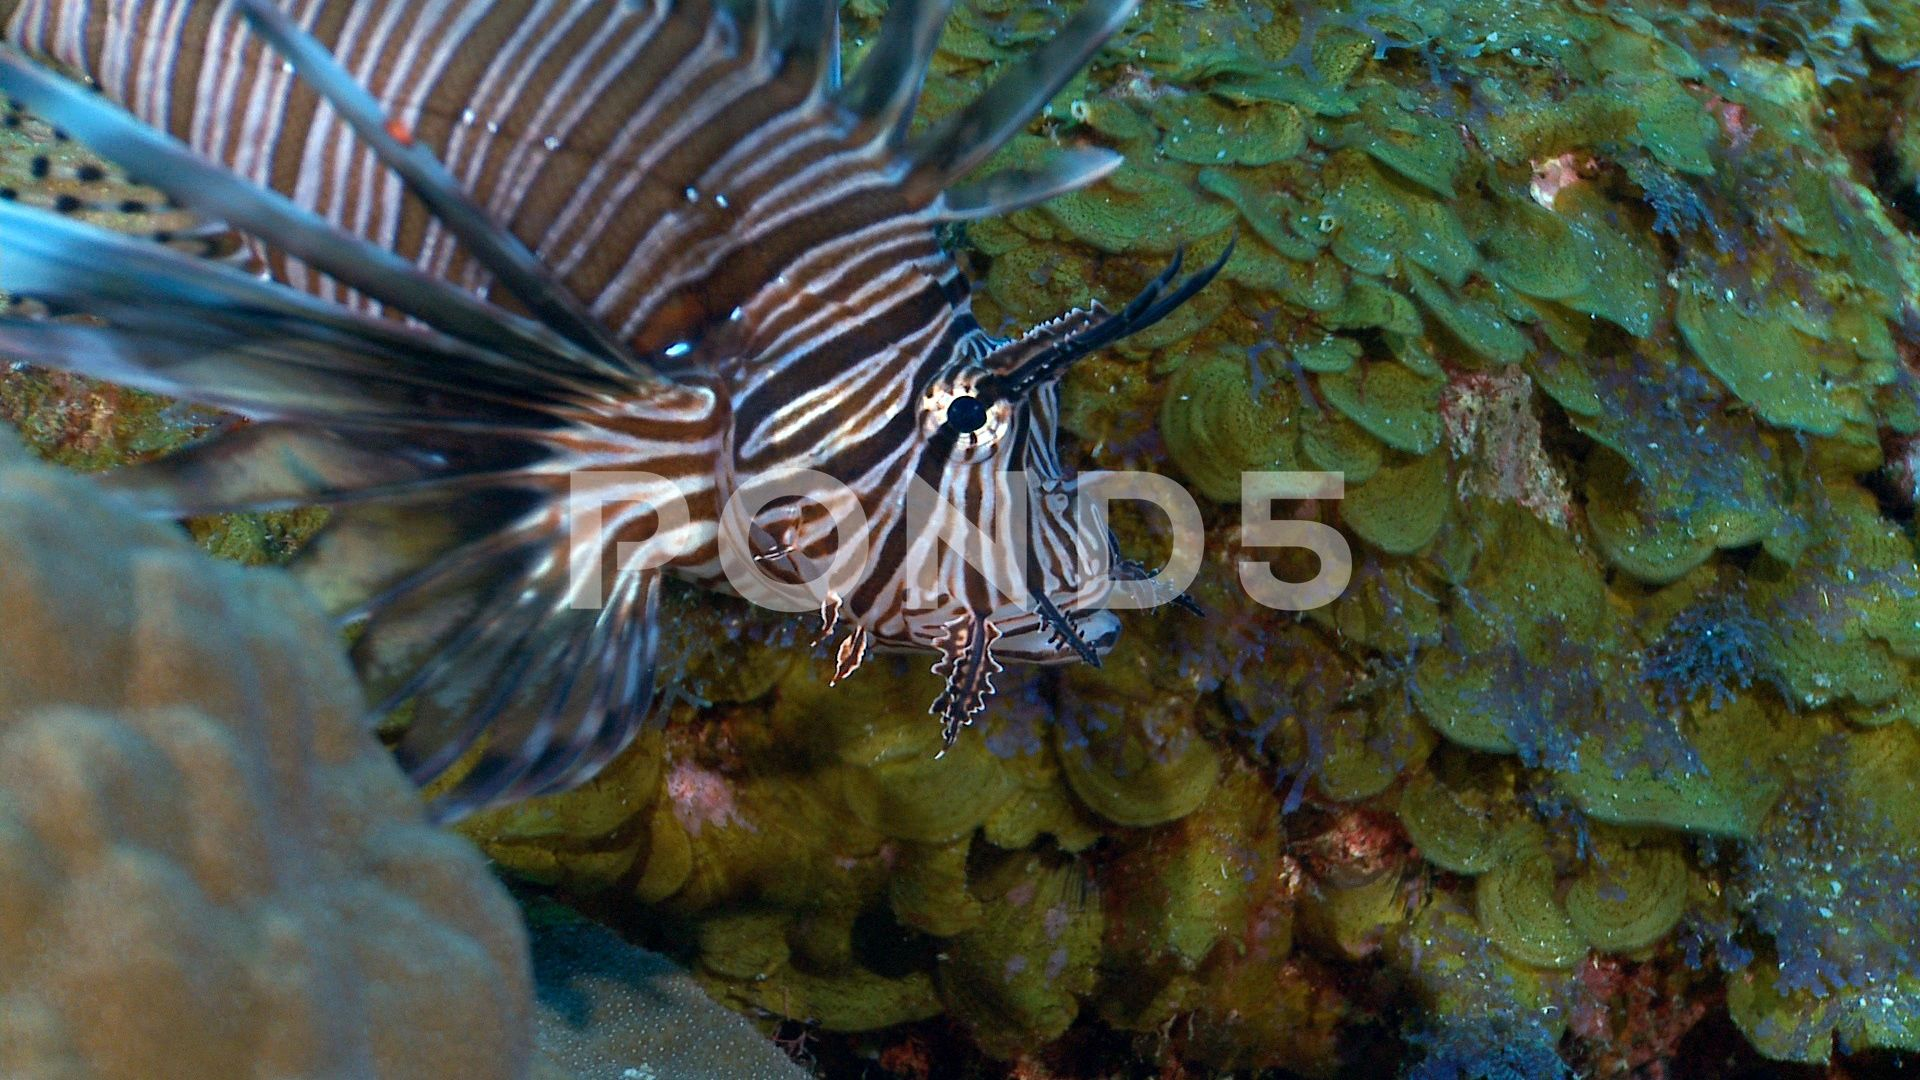 Lionfish Cu Invasive Species Of Caribbean Gulf Of Mexico Alantic Ocean Threat Stock Footage Species Caribbean Gulf Lionfish Lion Fish Invasive Species Species